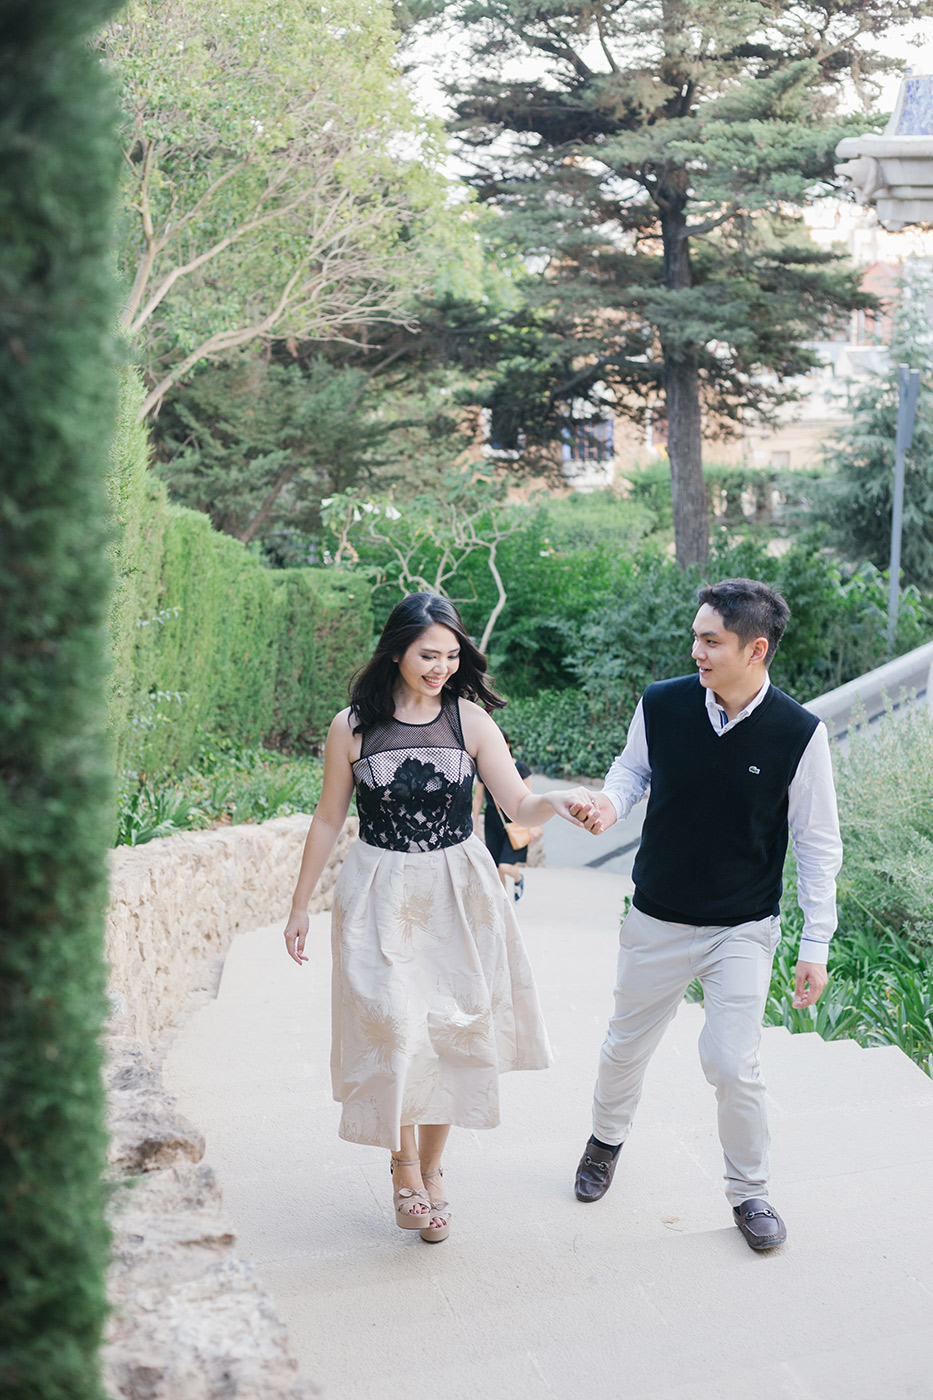 Romantic Engagement | Engagement Photographer Barcelona | Fine Art Photographer | Elegant pre wedding photoshoot Barcelona